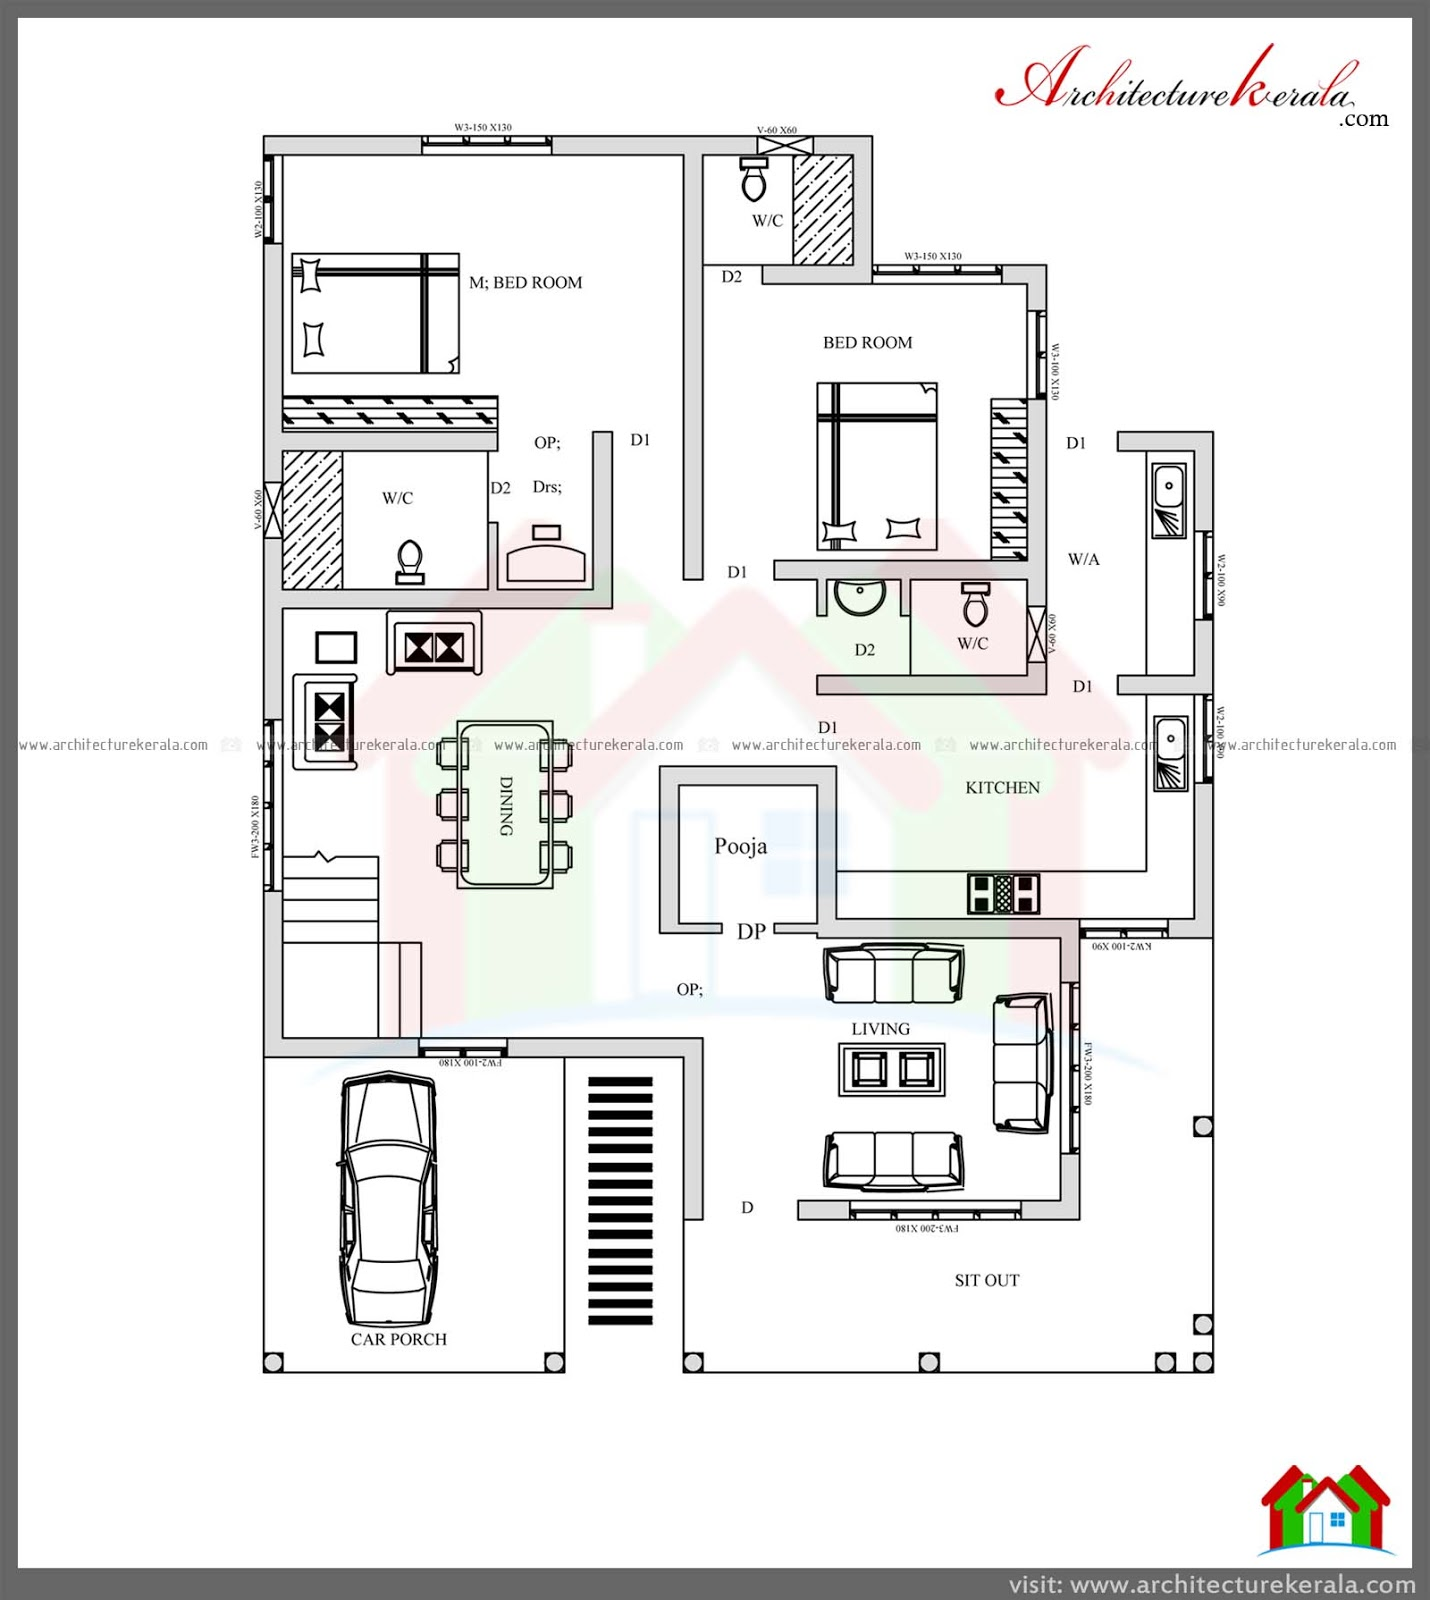 Stunning 4 bedroom kerala home design with pooja room free for Kerala house plans 4 bedroom